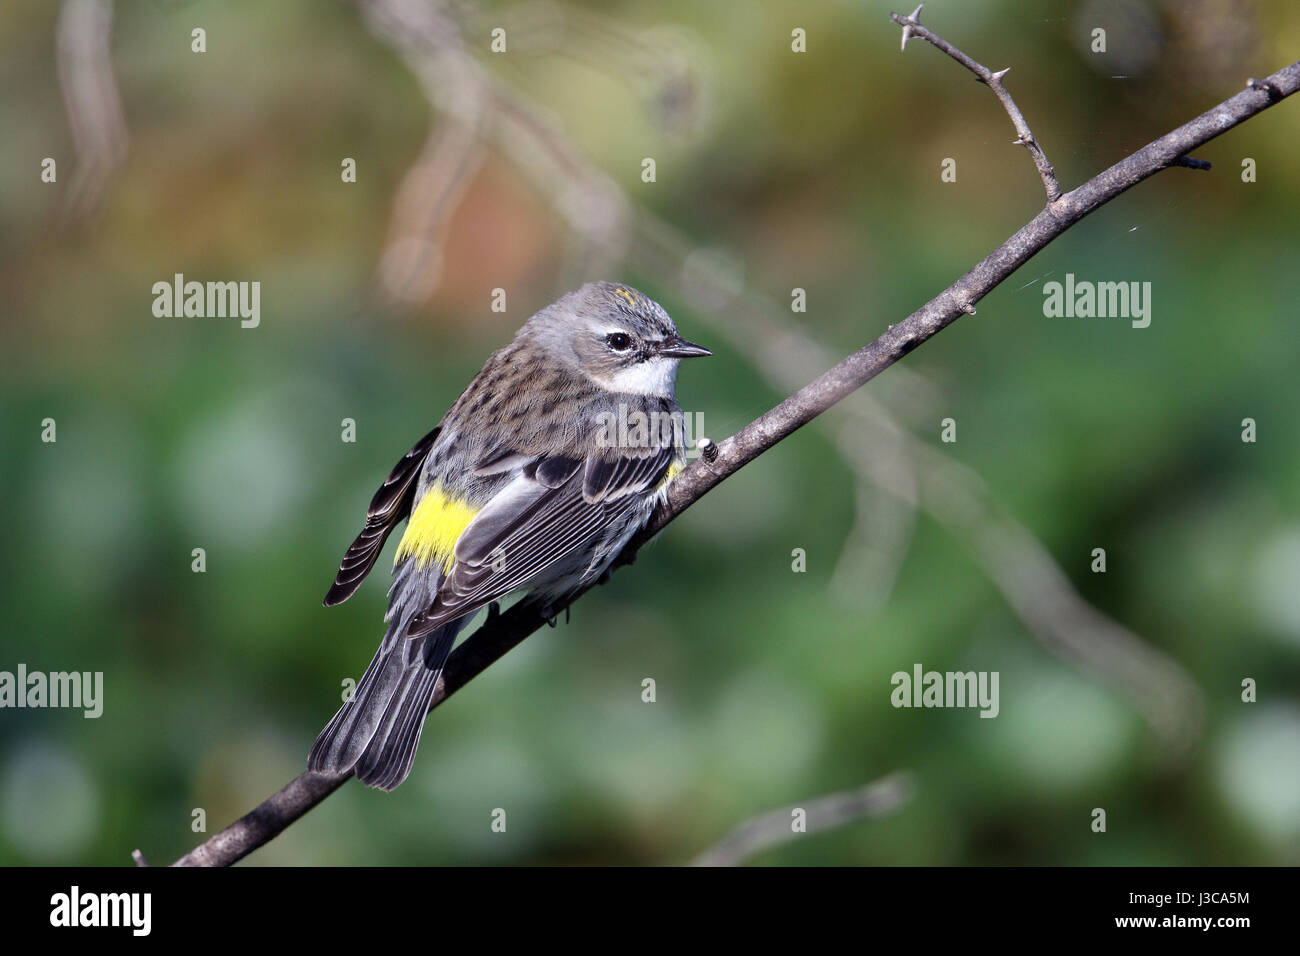 A Yellow-rumped Warbler (Setophaga coronata), perched on a twig at Camp Chowenwaw Park in Green Cove Springs, Florida. Stock Photo